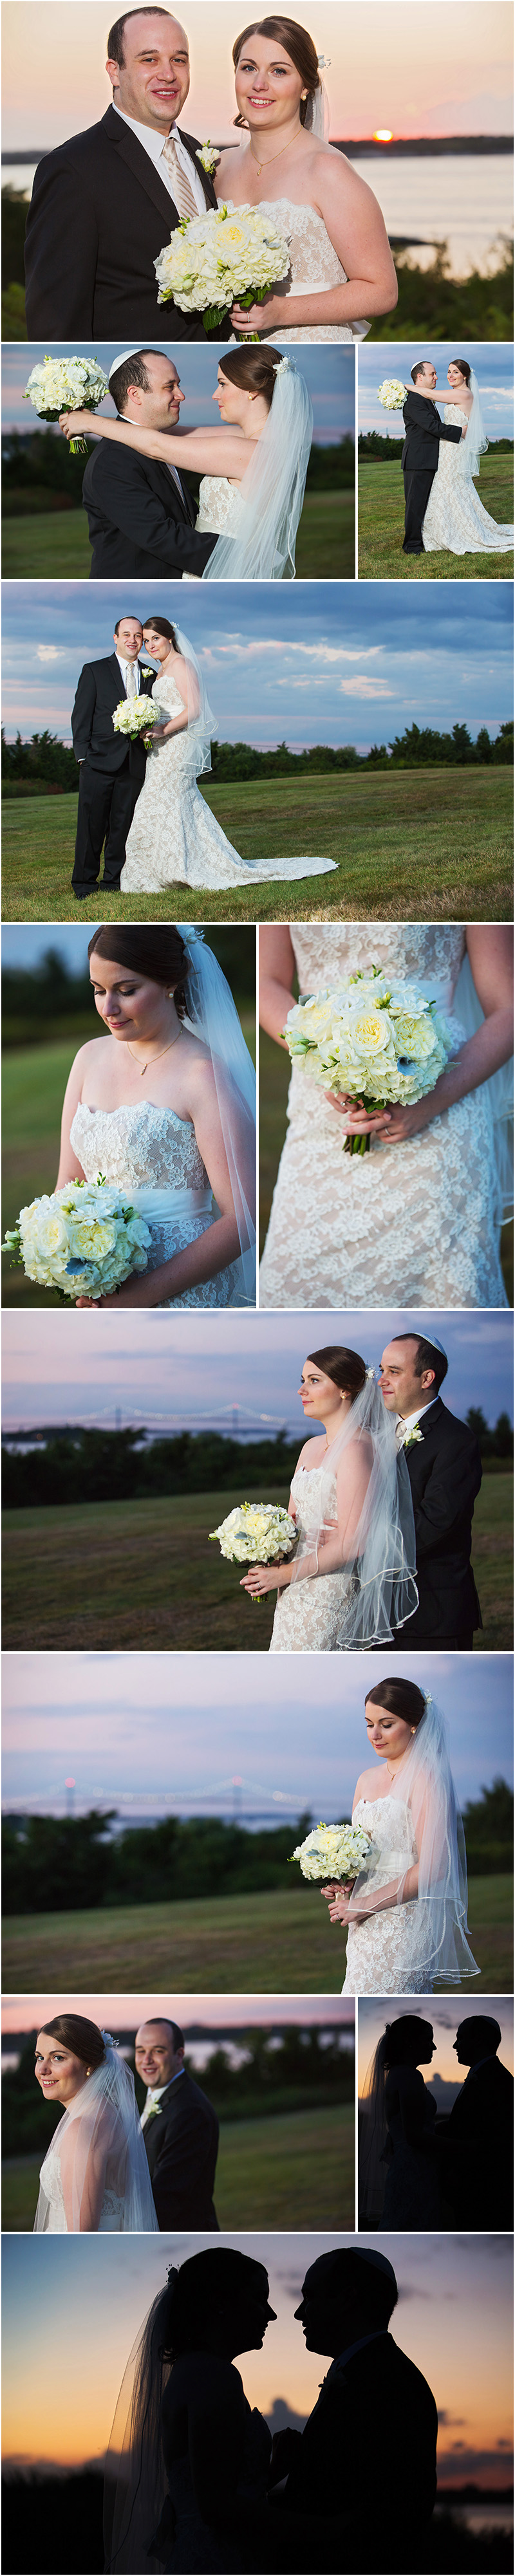 NEW ENGLAND WEDDING PHOTOGRAPHERS